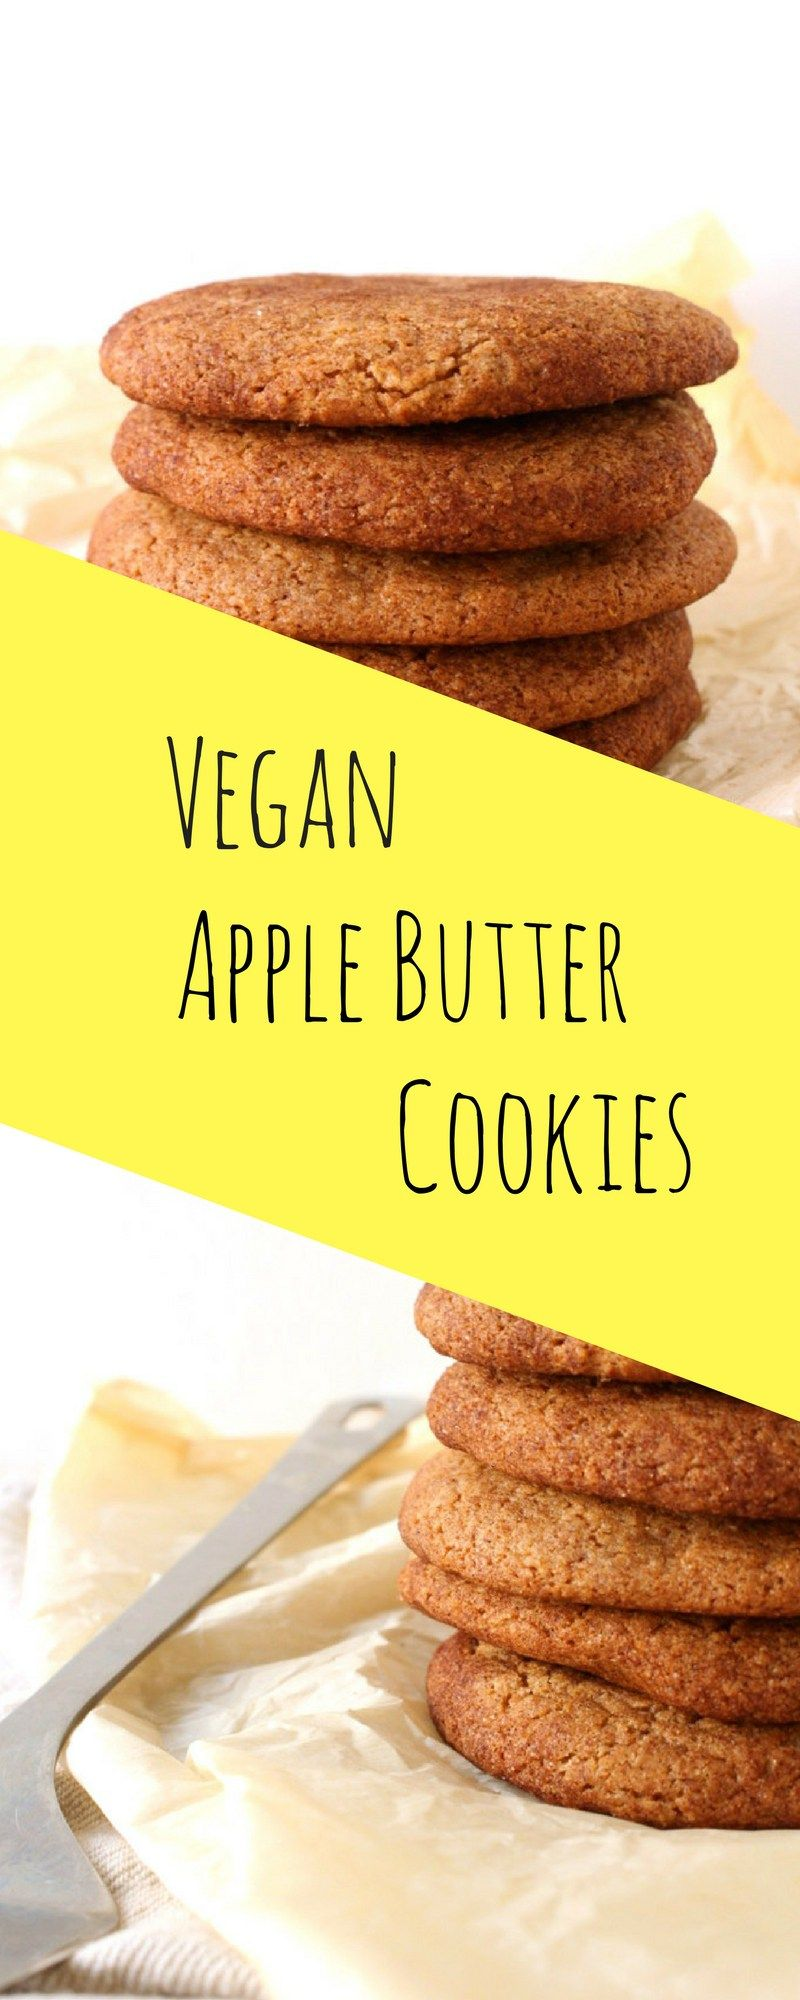 Gluten Free Apple Butter Bundt Cake With Cinnamon Glaze Vegan Allergy Free Gluten Free Butter Gluten Free Bundt Cake Dessert Recipes